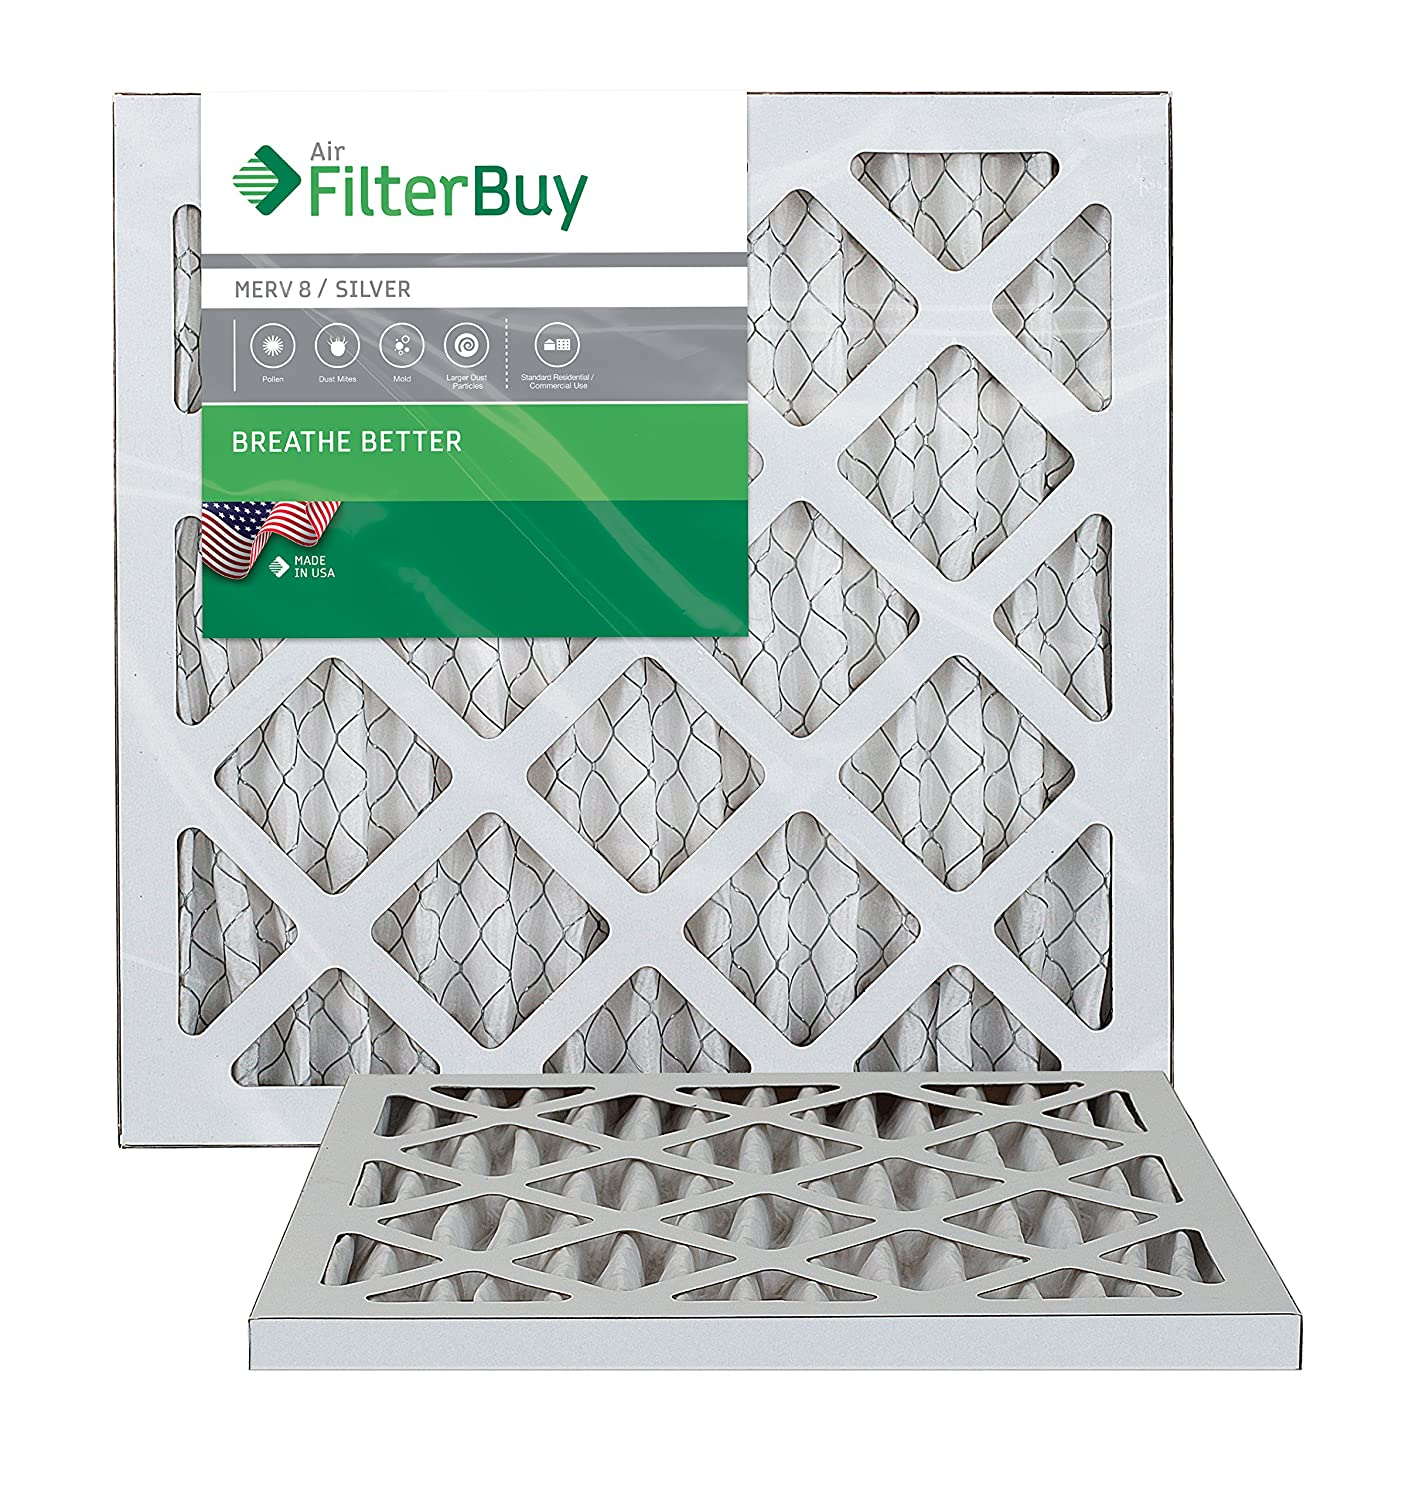 FilterBuy 14x18x1 MERV 8 Pleated AC Furnace Air Filter, (Pack of 2 Filters), 14x18x1 – Silver